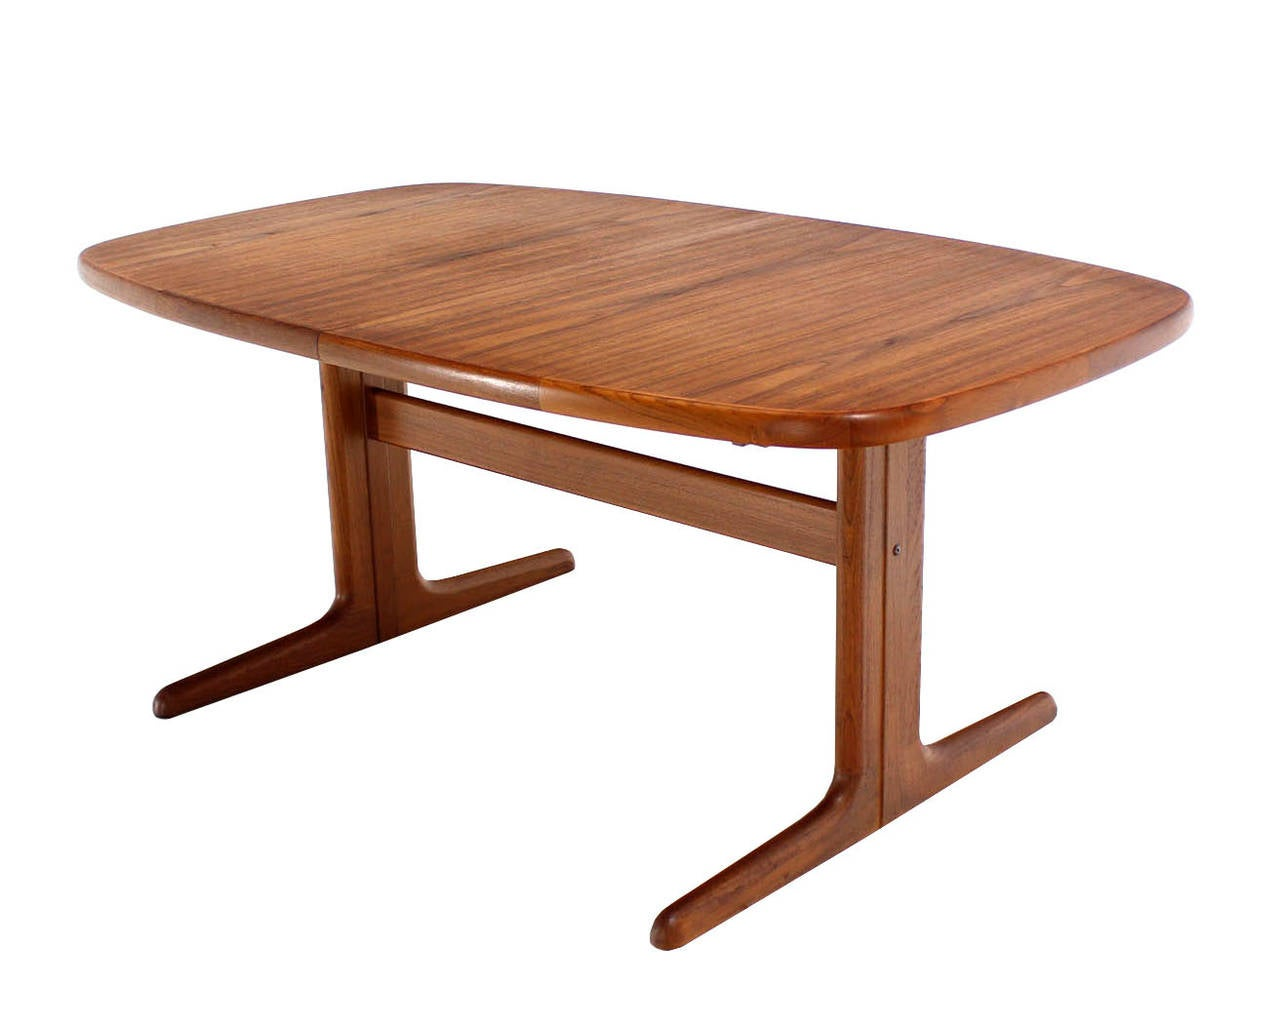 Danish modern teak dining room table with two leaves at for Danish modern dining room table